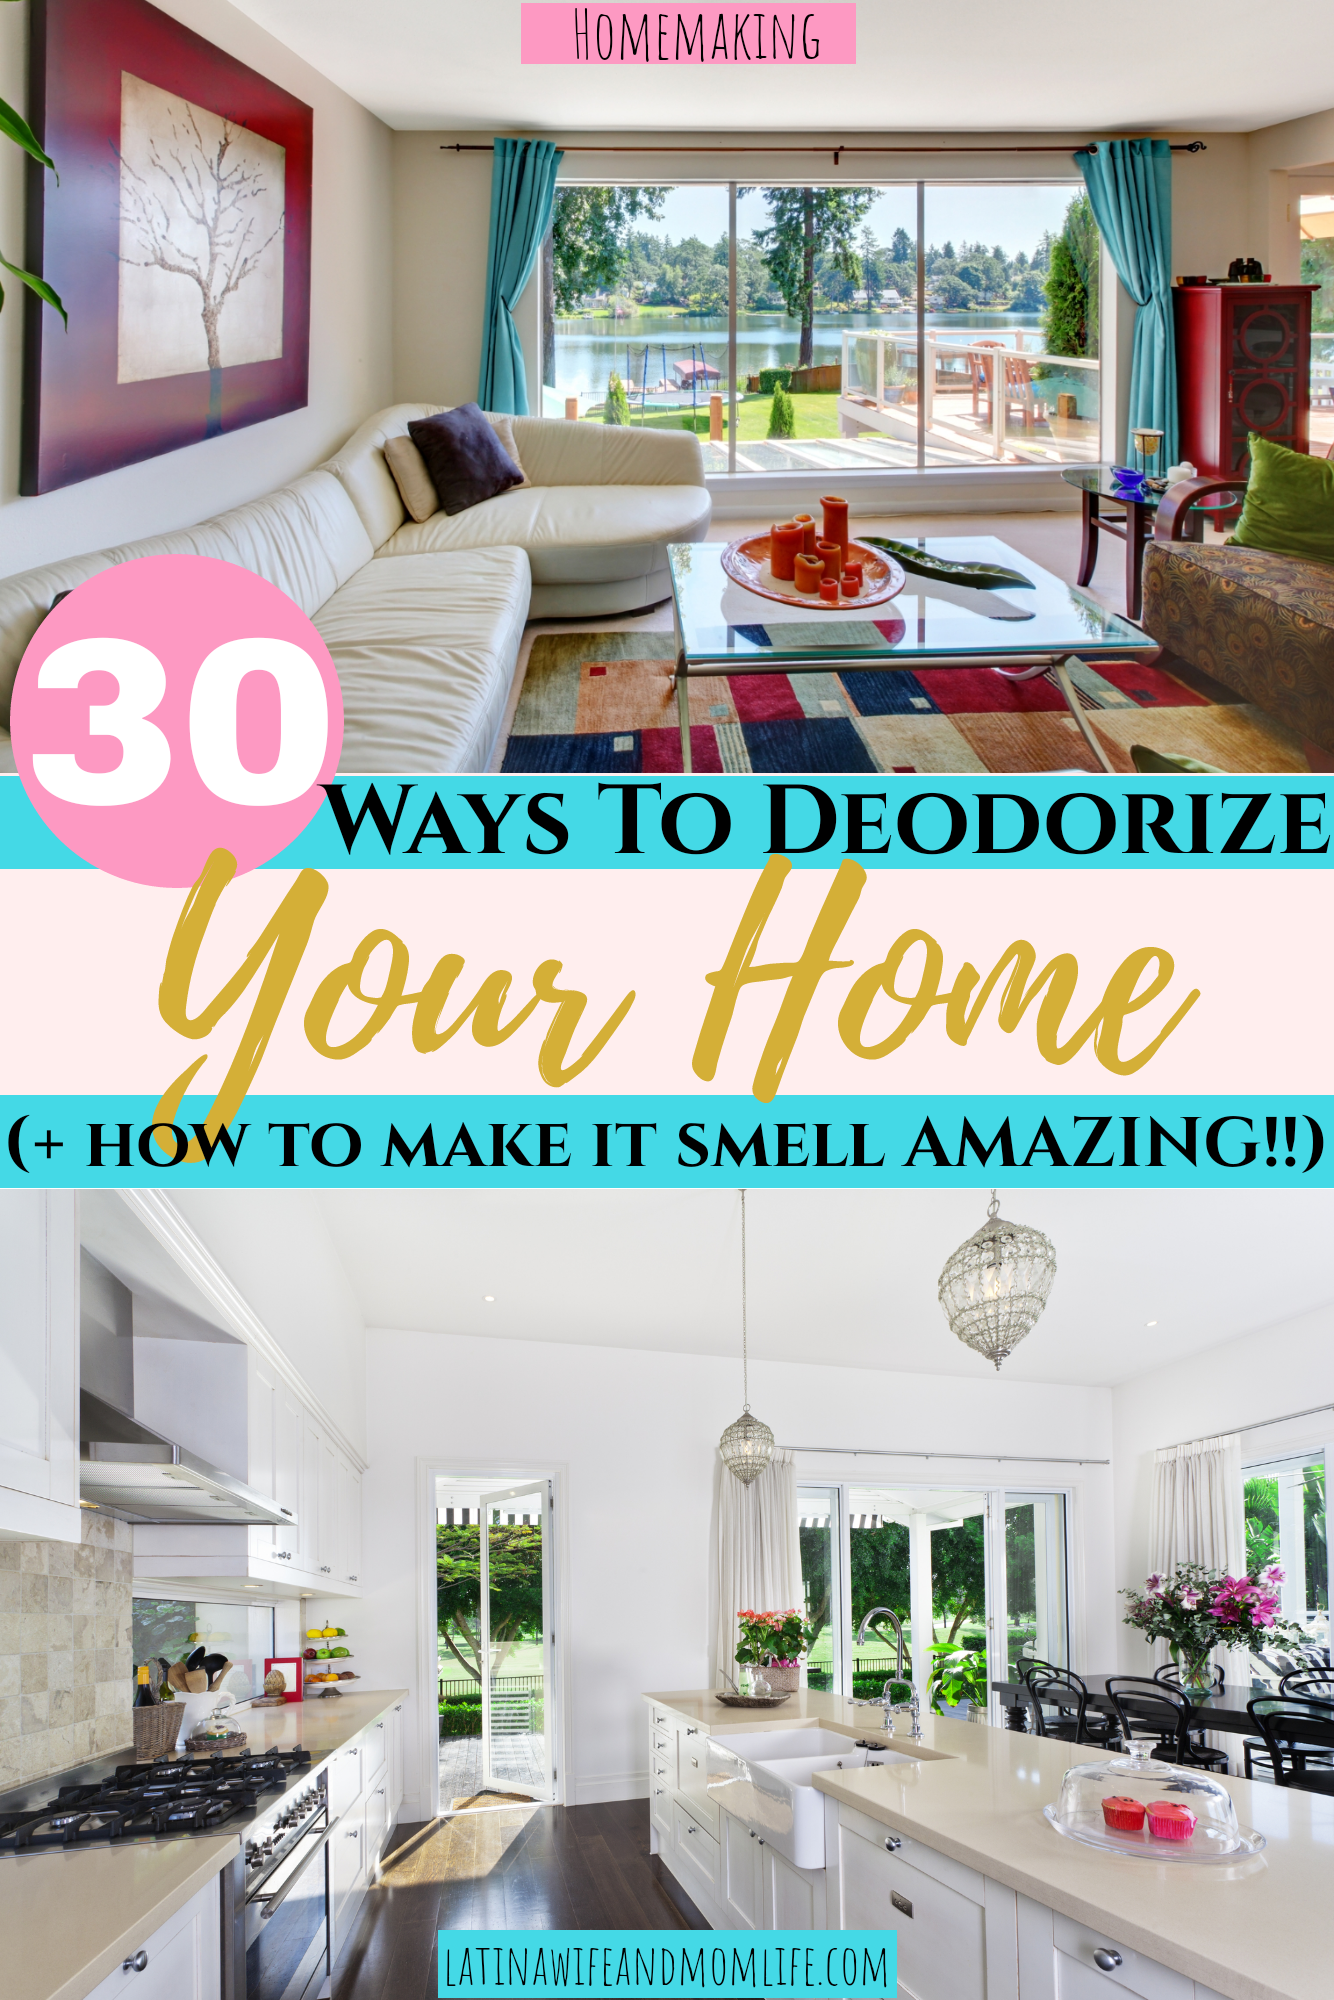 How to deodorize your home